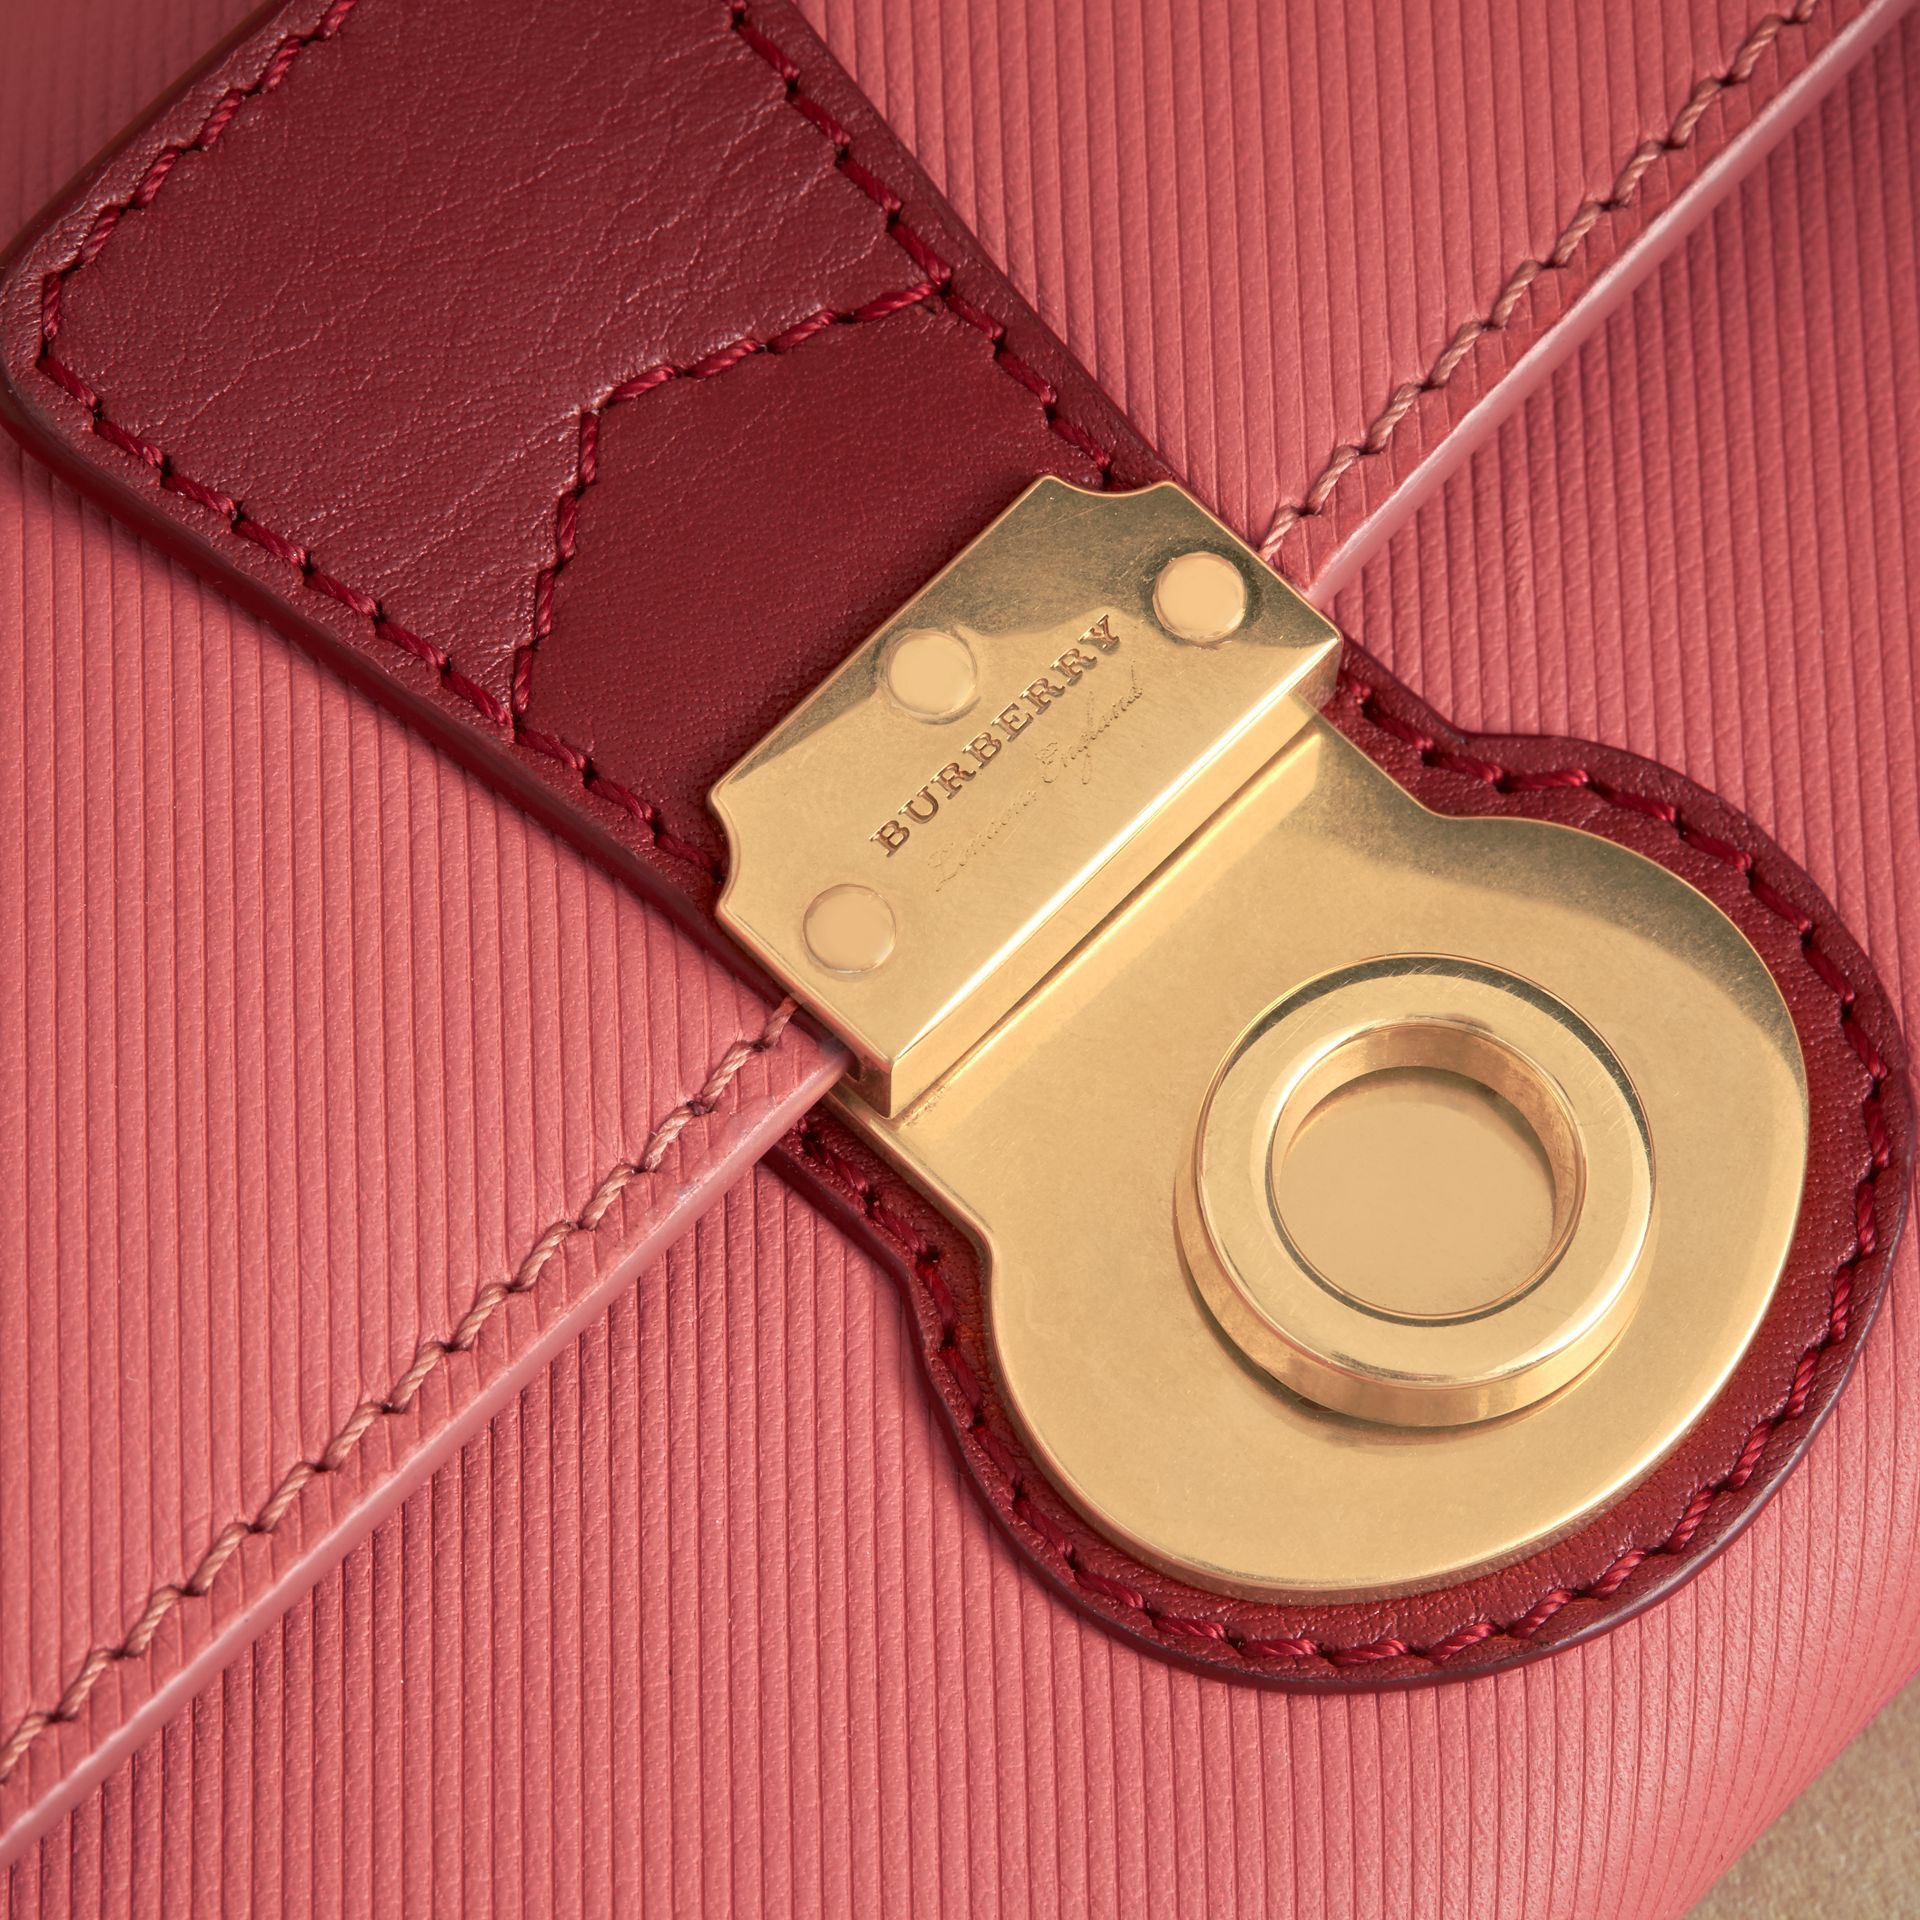 Two-tone Trench Leather Continental Wallet in Blossom Pink/antique Red - Women | Burberry Hong Kong - gallery image 1